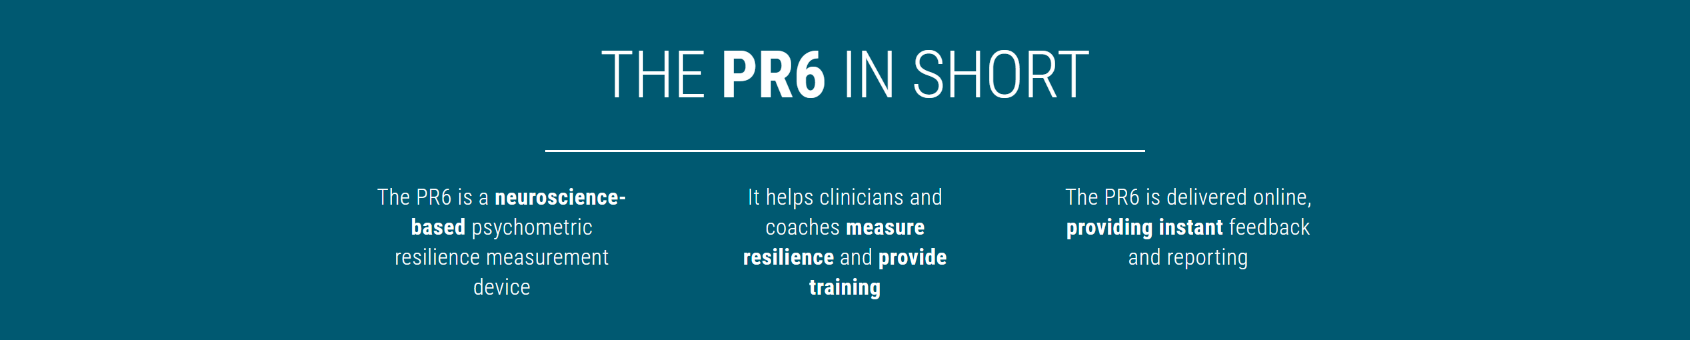 PR6 Resilience Assessment,Certification & Training t Talent Tools